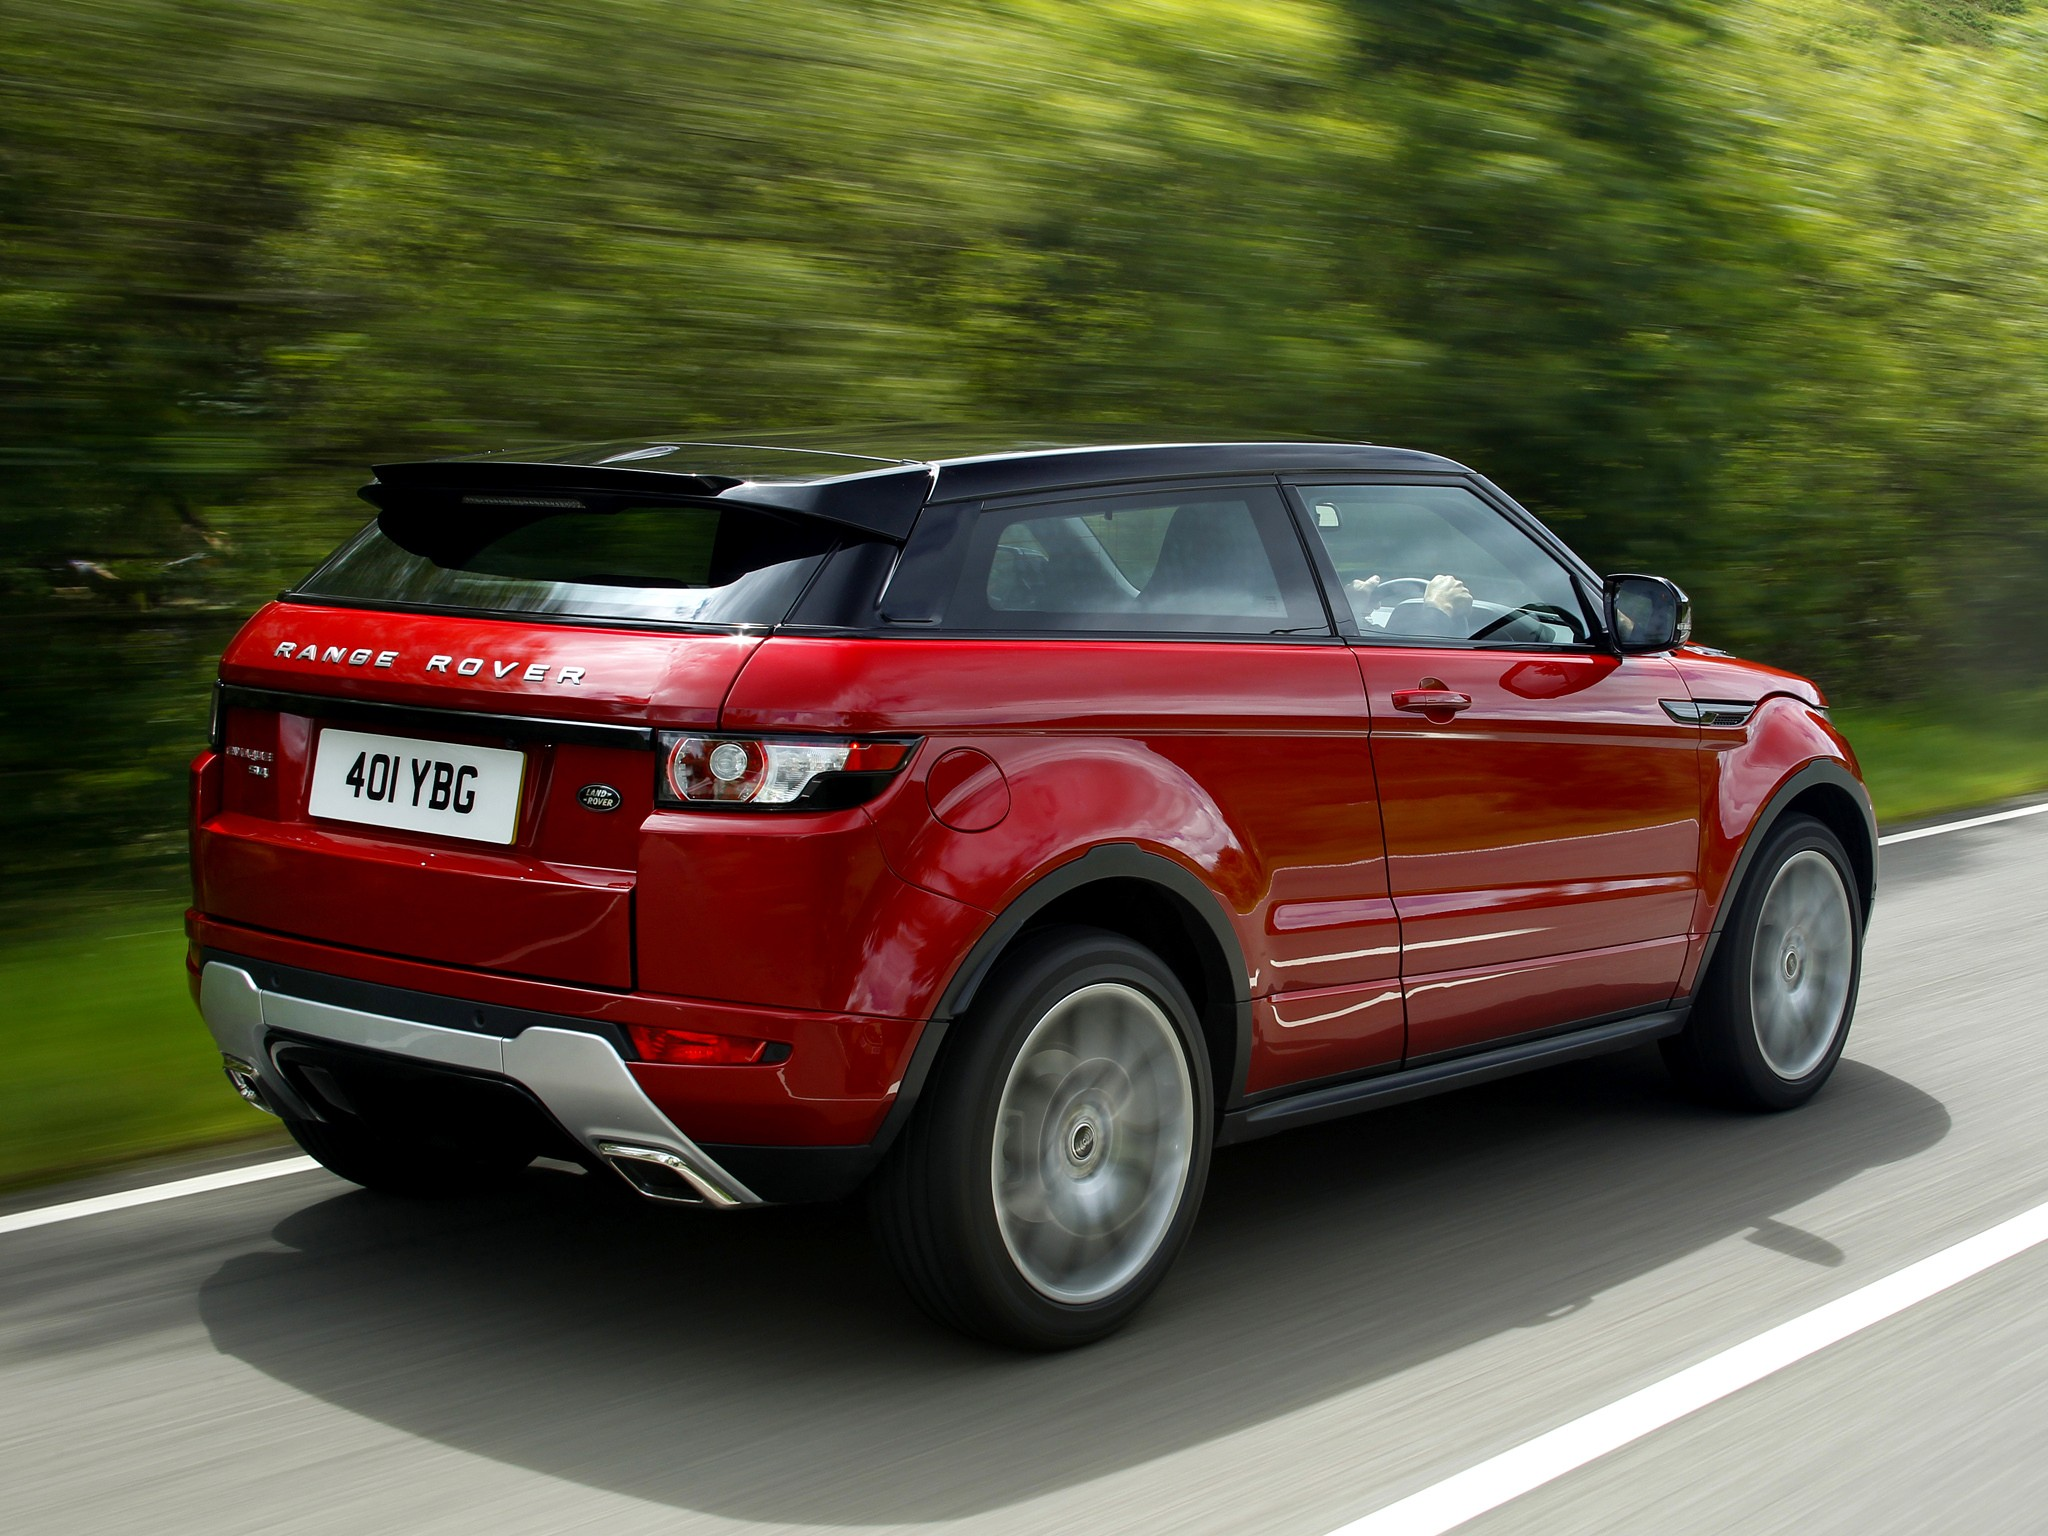 land rover range rover evoque coupe specs 2011 2012 2013 2014 2015 autoevolution. Black Bedroom Furniture Sets. Home Design Ideas